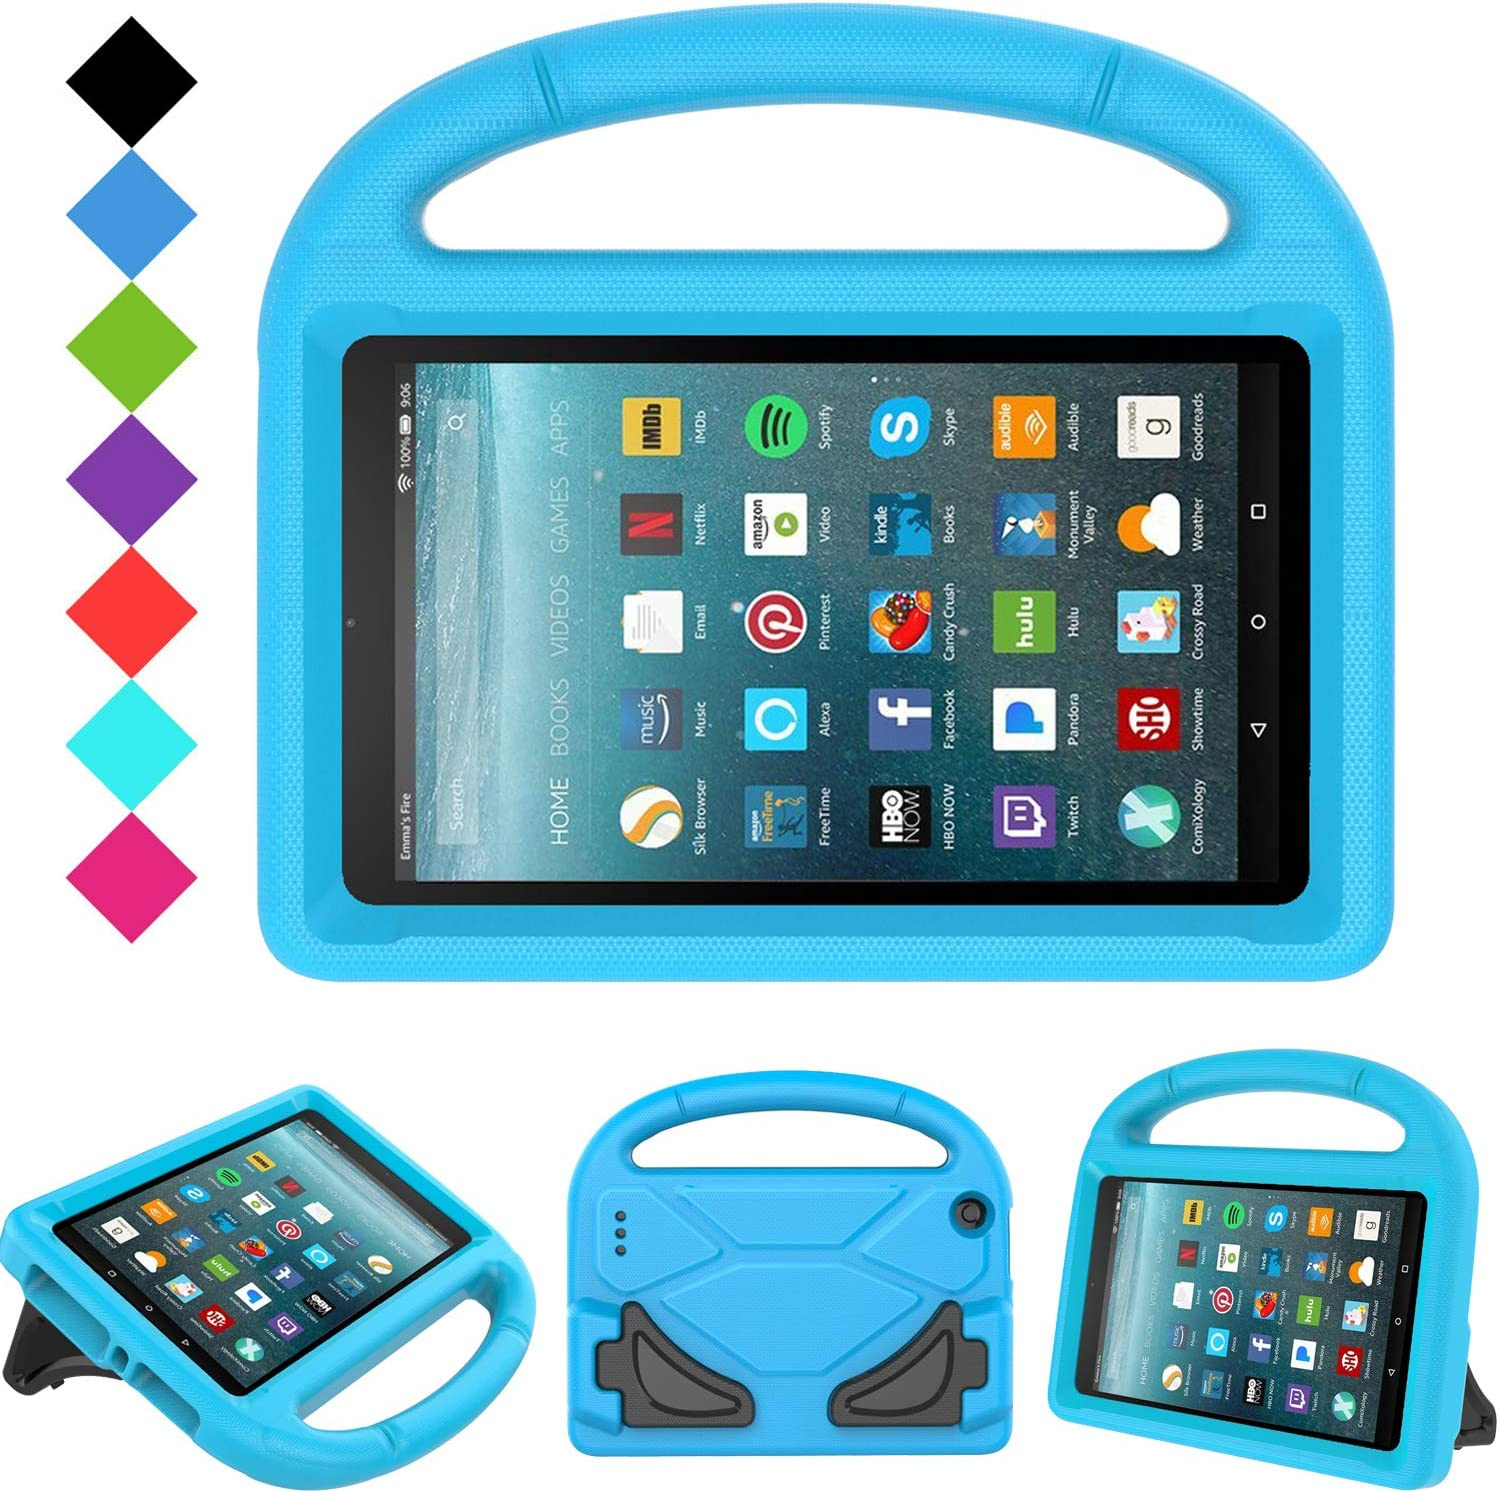 Amazon Com Kids Case For All New Fire 7 2019 2017 Tirin Light Weight Shock Proof Handle Kid Proof Cover Kids Case For Amazon Fire 7 Tablet 9th 7th 5th Generation 2019 2017 2015 Release 7 Display